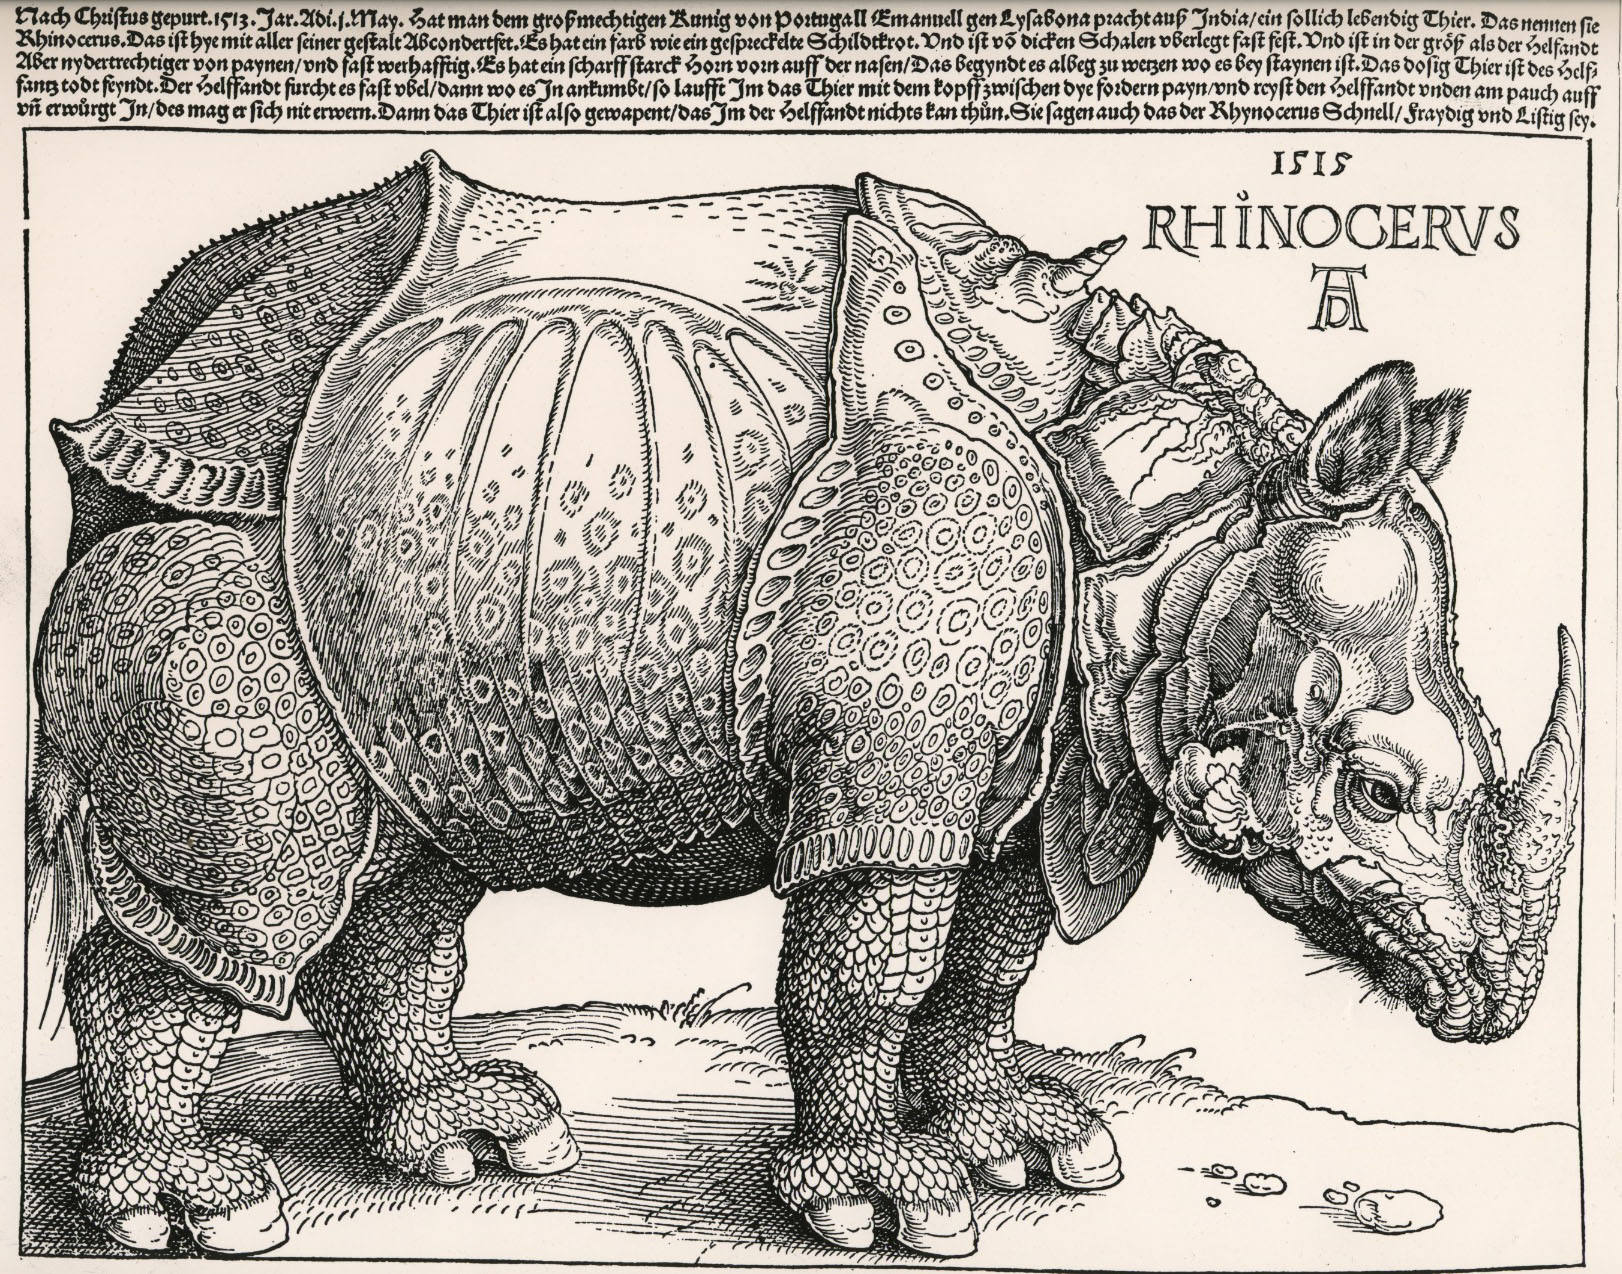 h2g2 - The Rhinoceros - Edited Entry